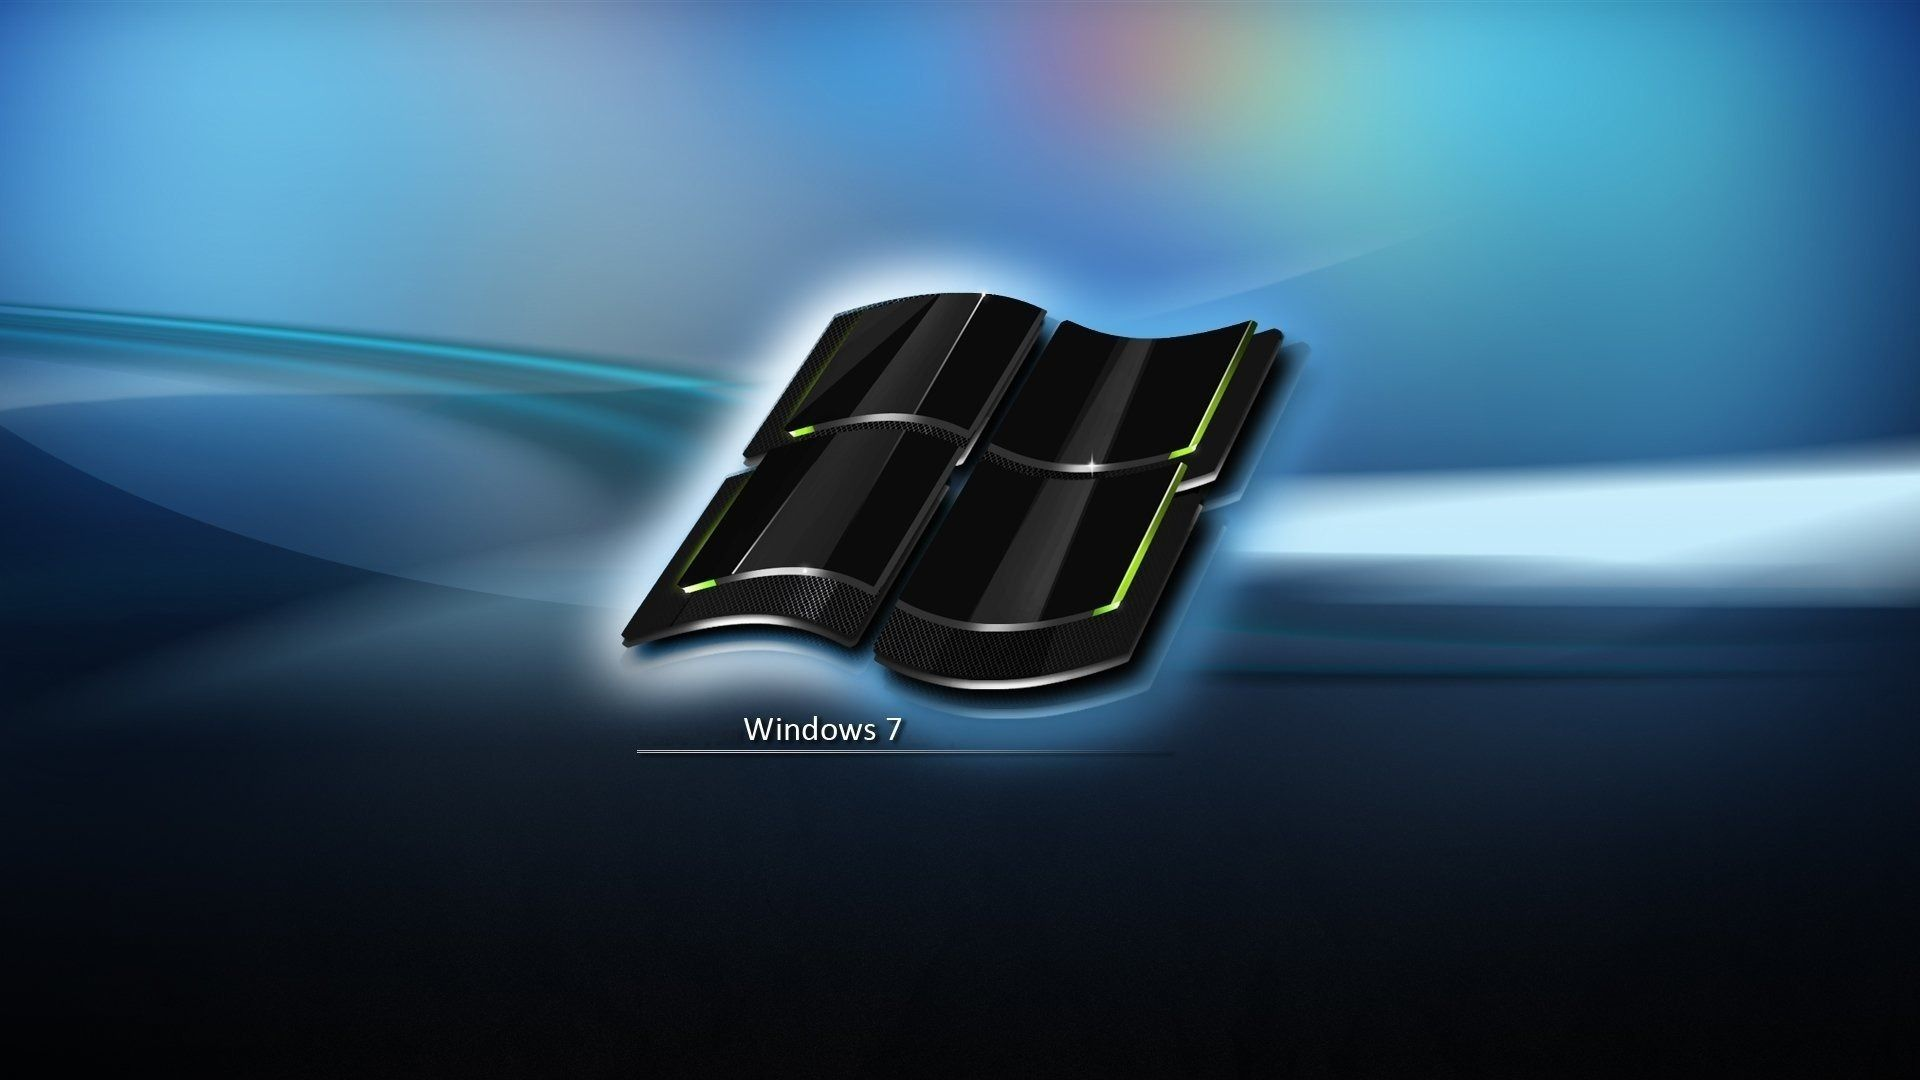 Windows 7 Crystal Black Logo Hd Wallpaper Computer Wallpaper Hd Dual Screen Wallpaper Dark Wallpaper